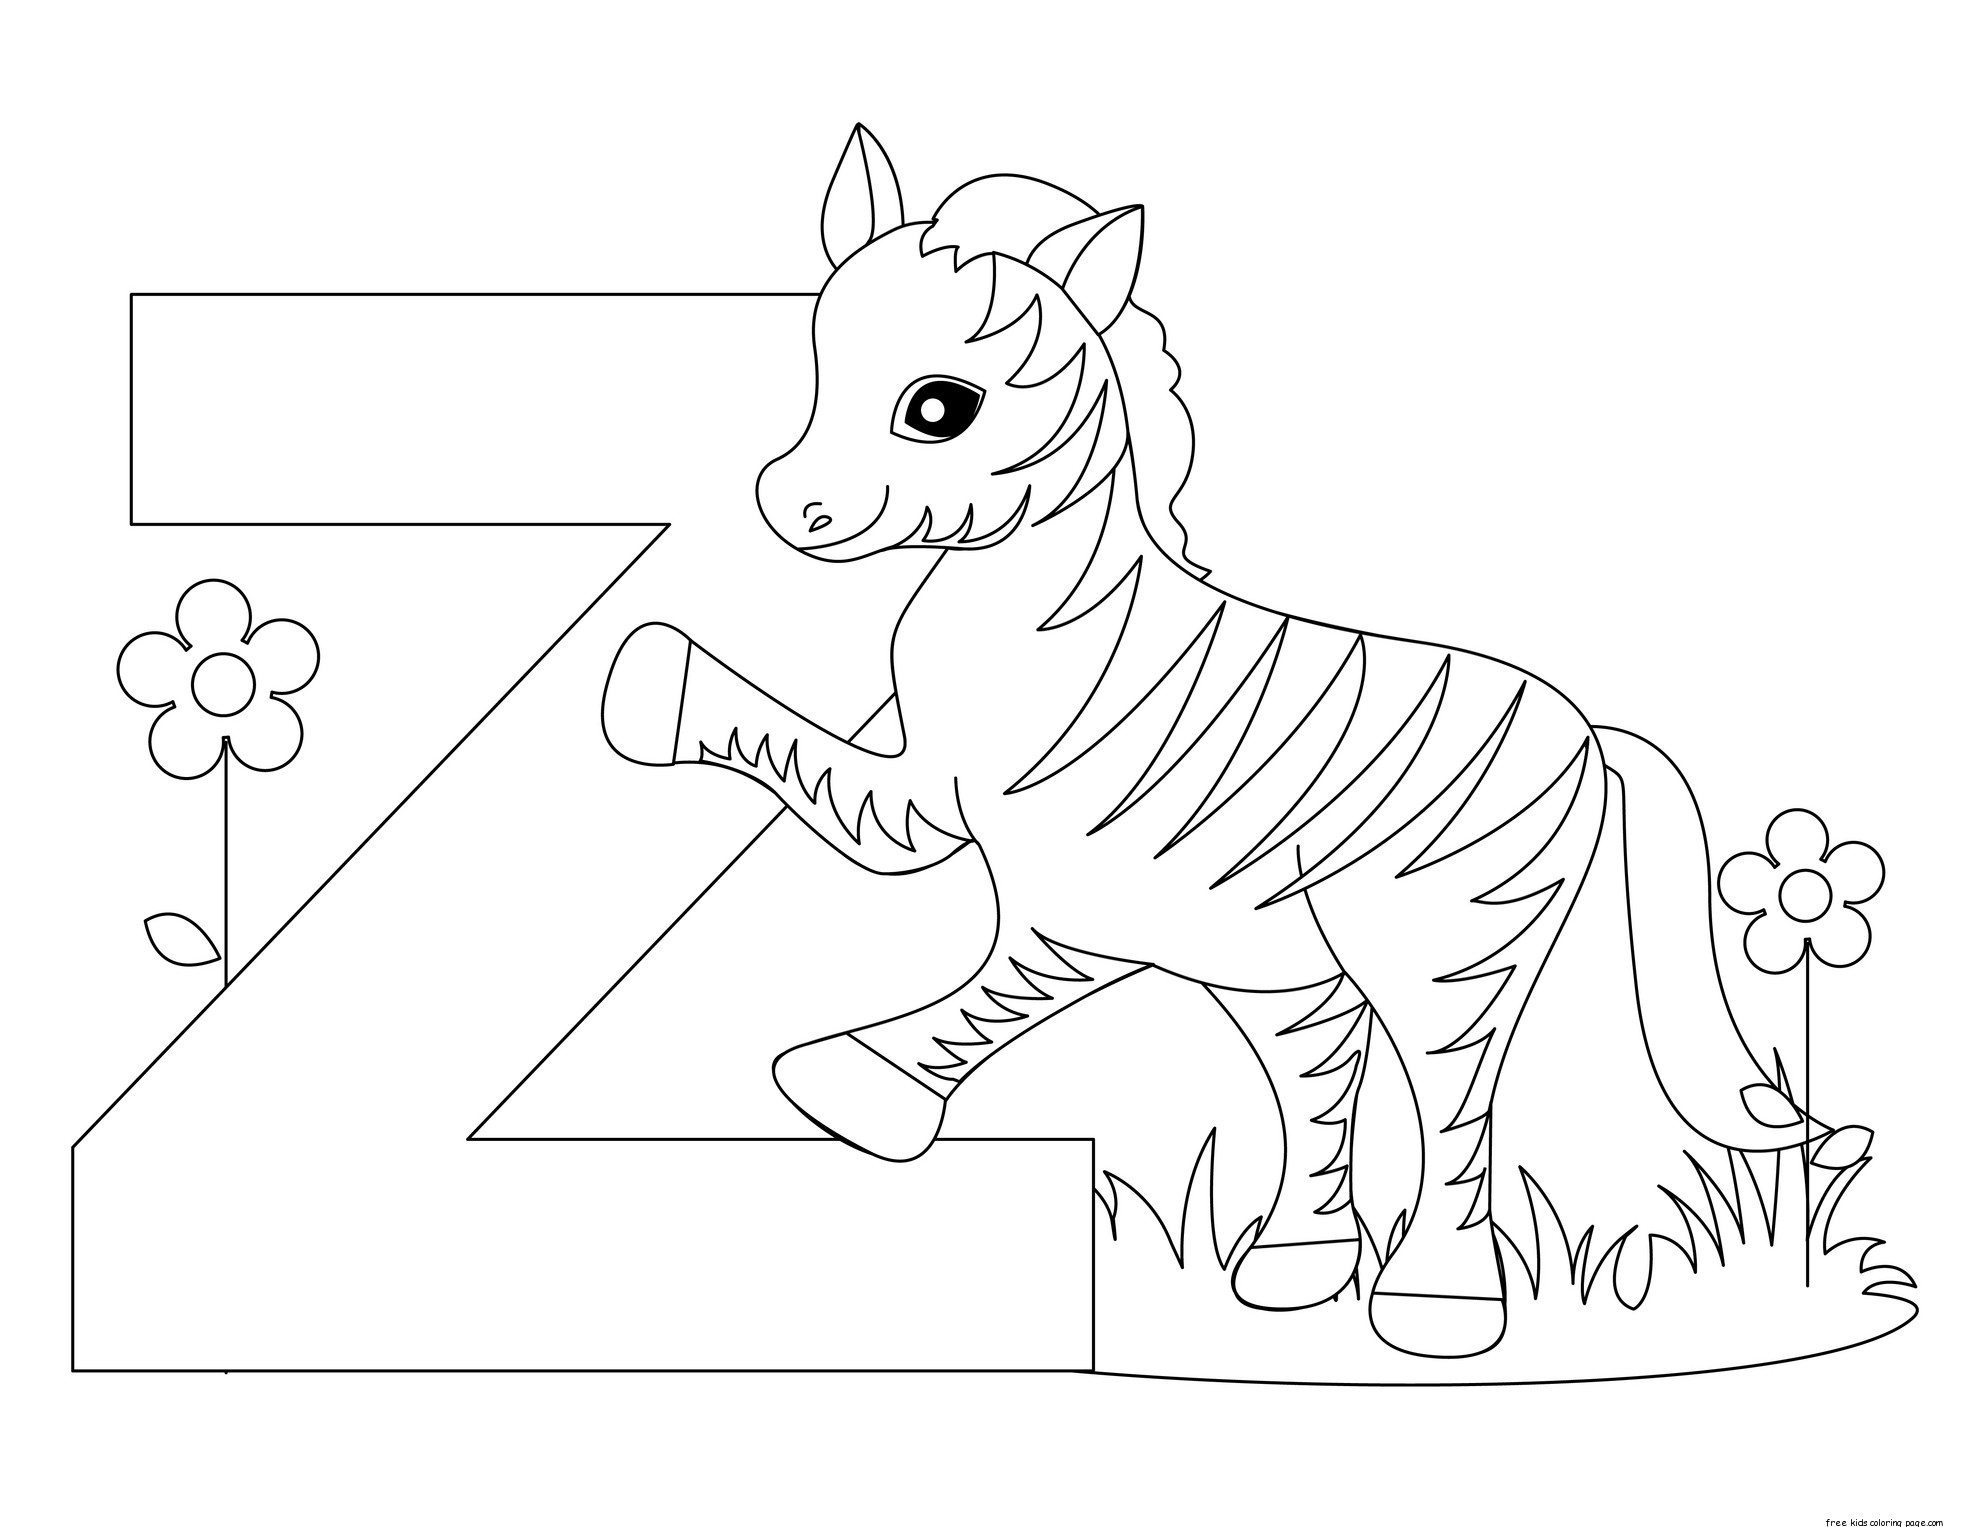 z word coloring pages - photo #21